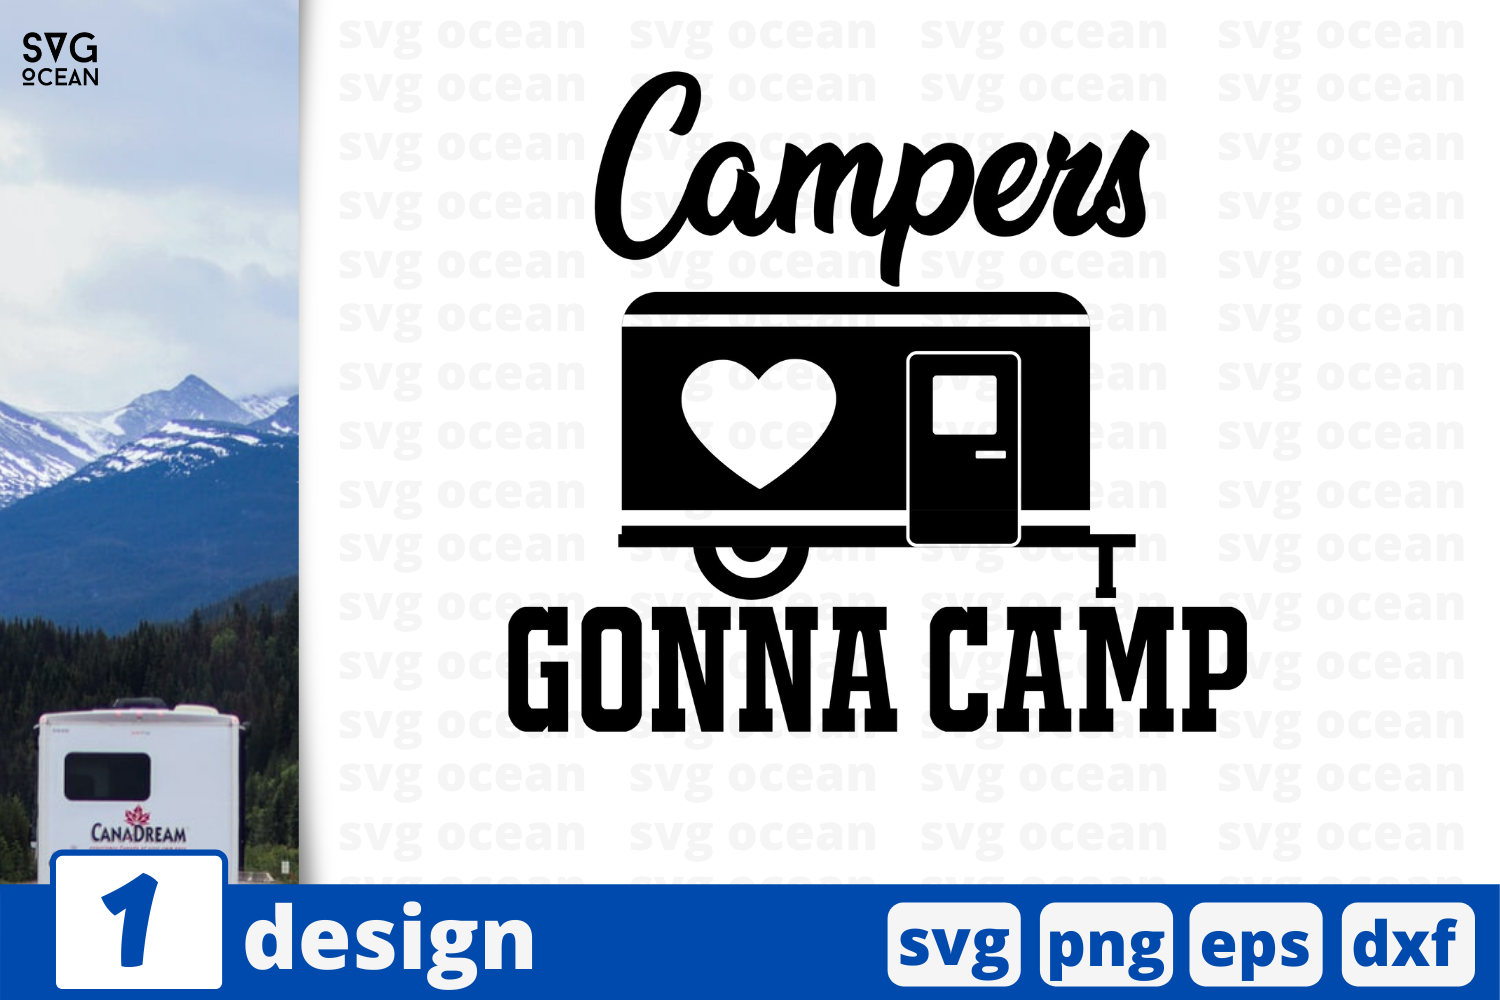 Campers Gonna Camp Graphic By Svgocean Creative Fabrica